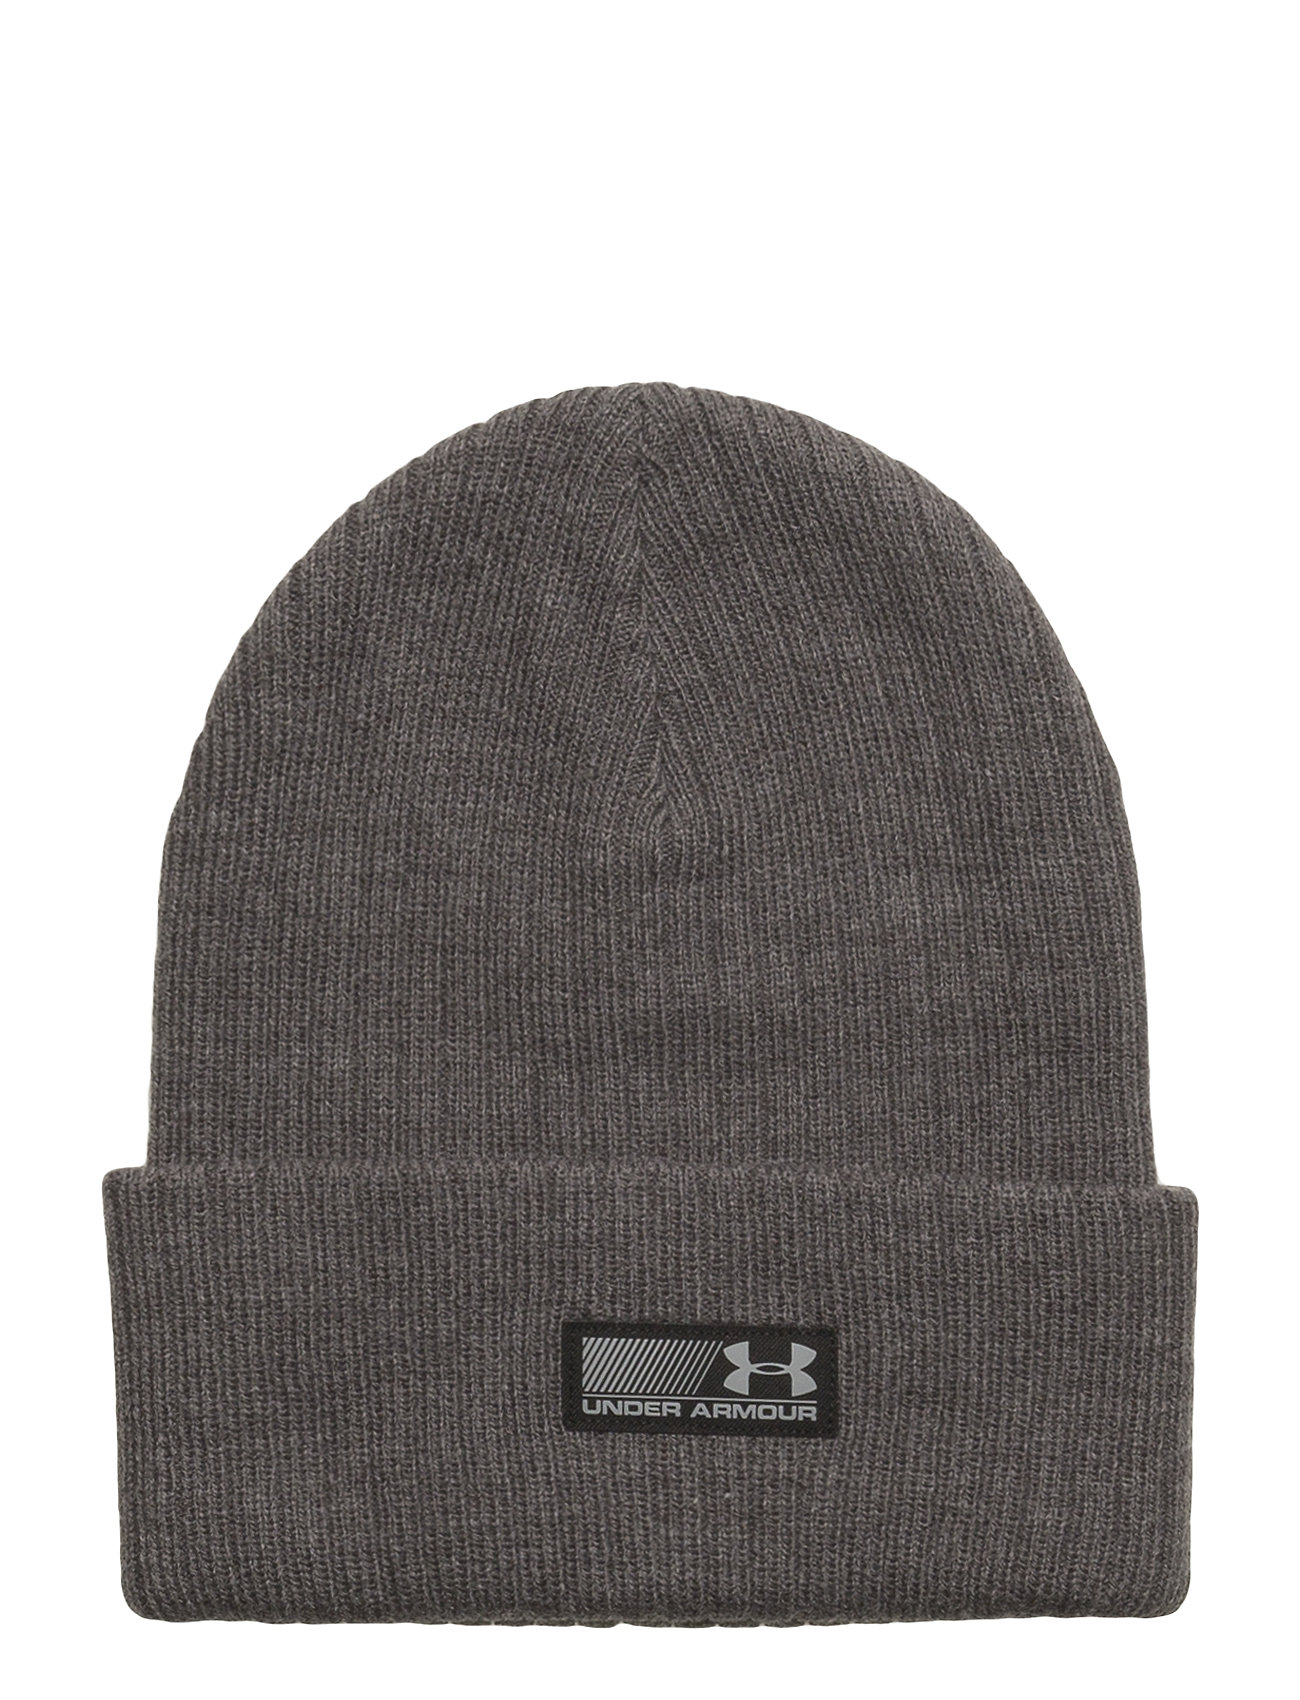 under armour – Men's ua truck stop beanie på boozt.com dk